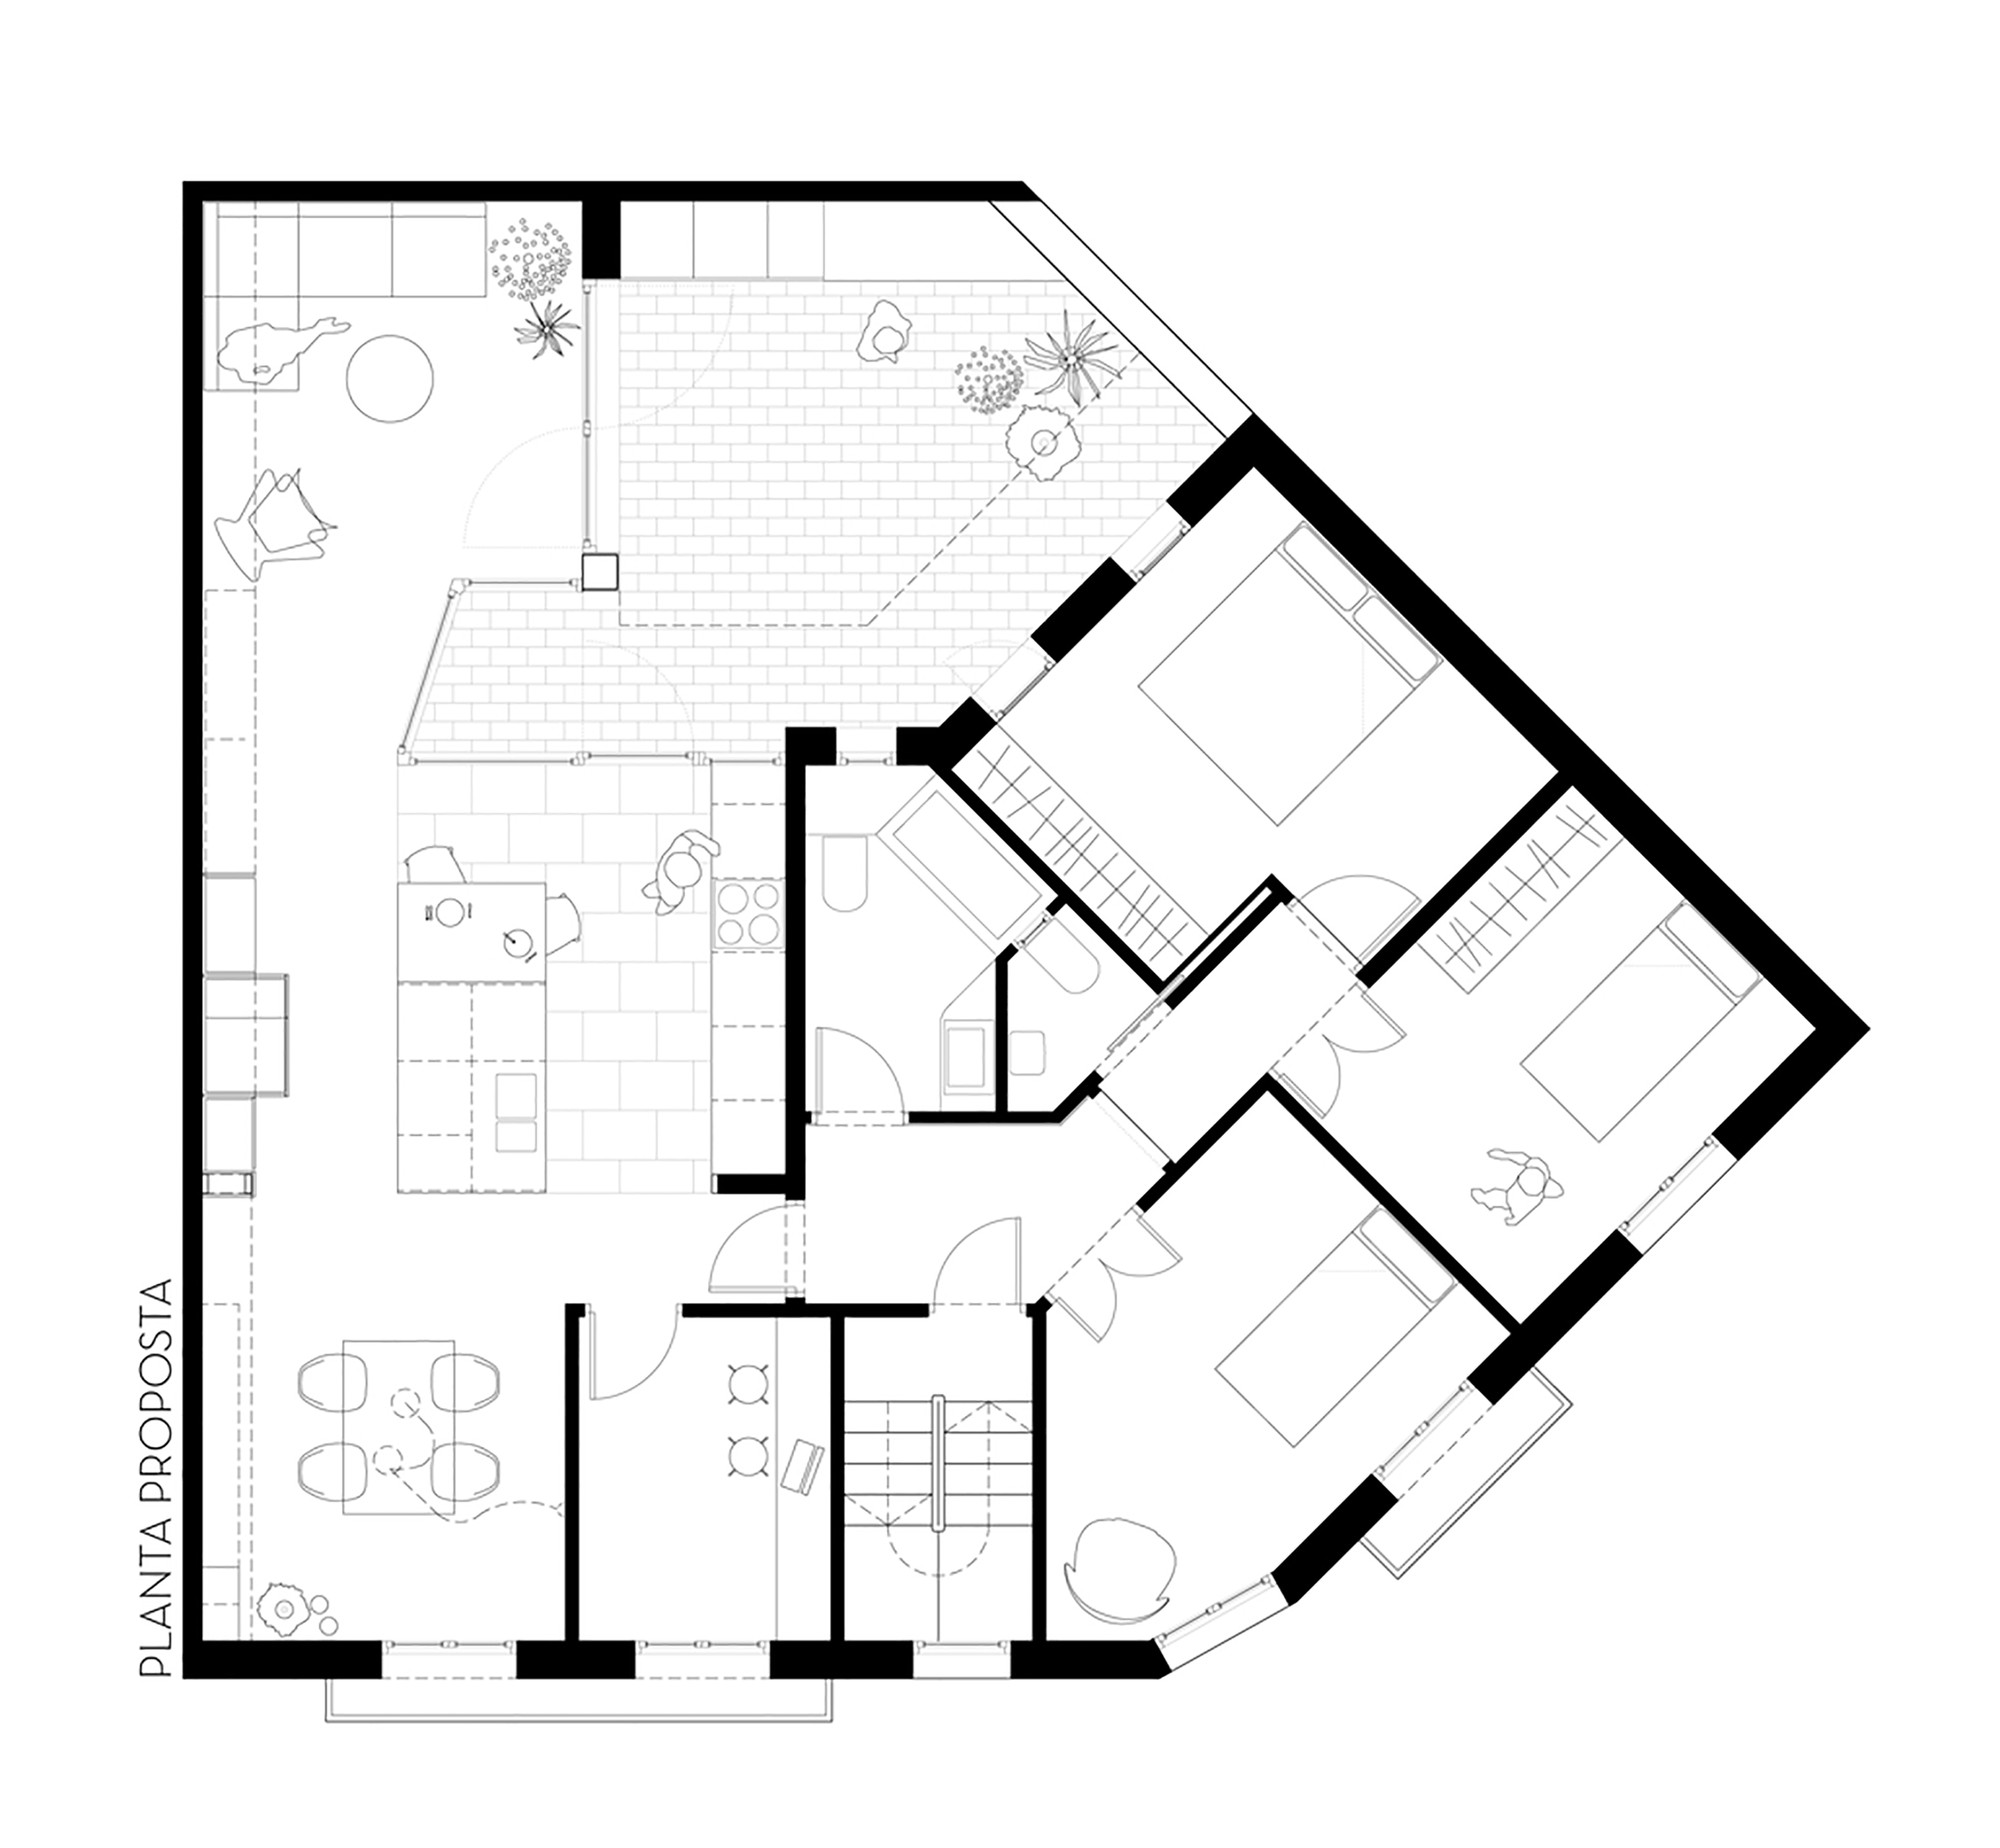 2000x1848 Gallery Of Apartment And Courtyard In Barcelona Cavaa